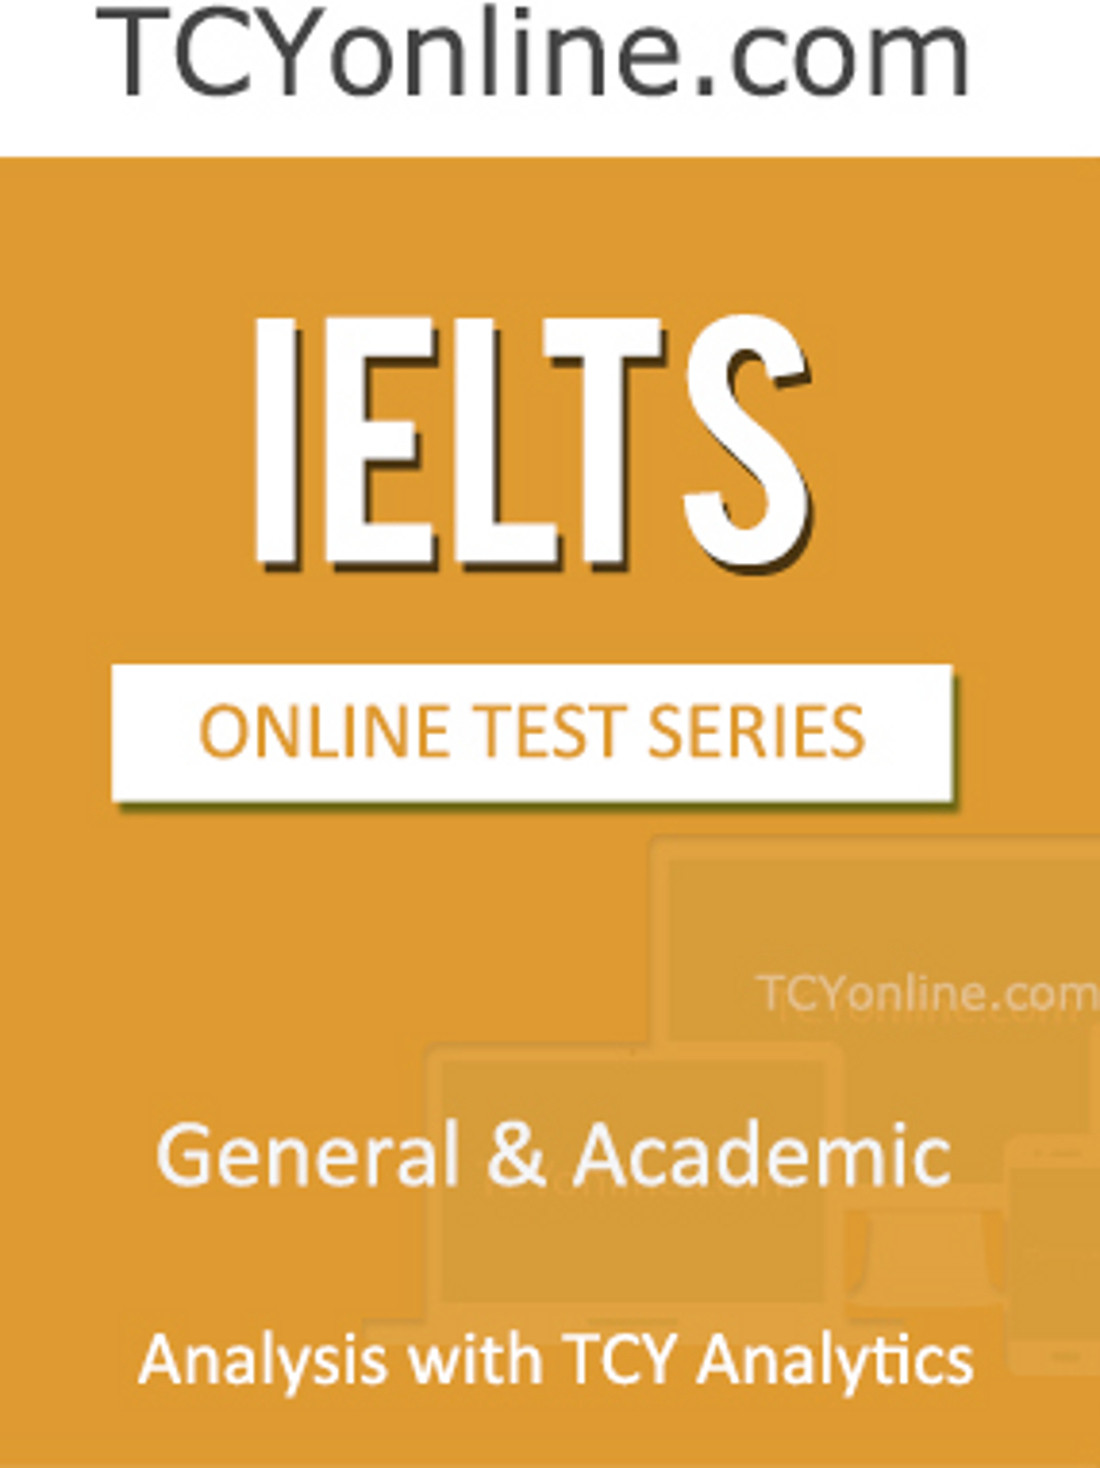 TCYonline IELTS - General & Academic Analysis with TCY Analytics (10 Months Pack) Online Test(Voucher)